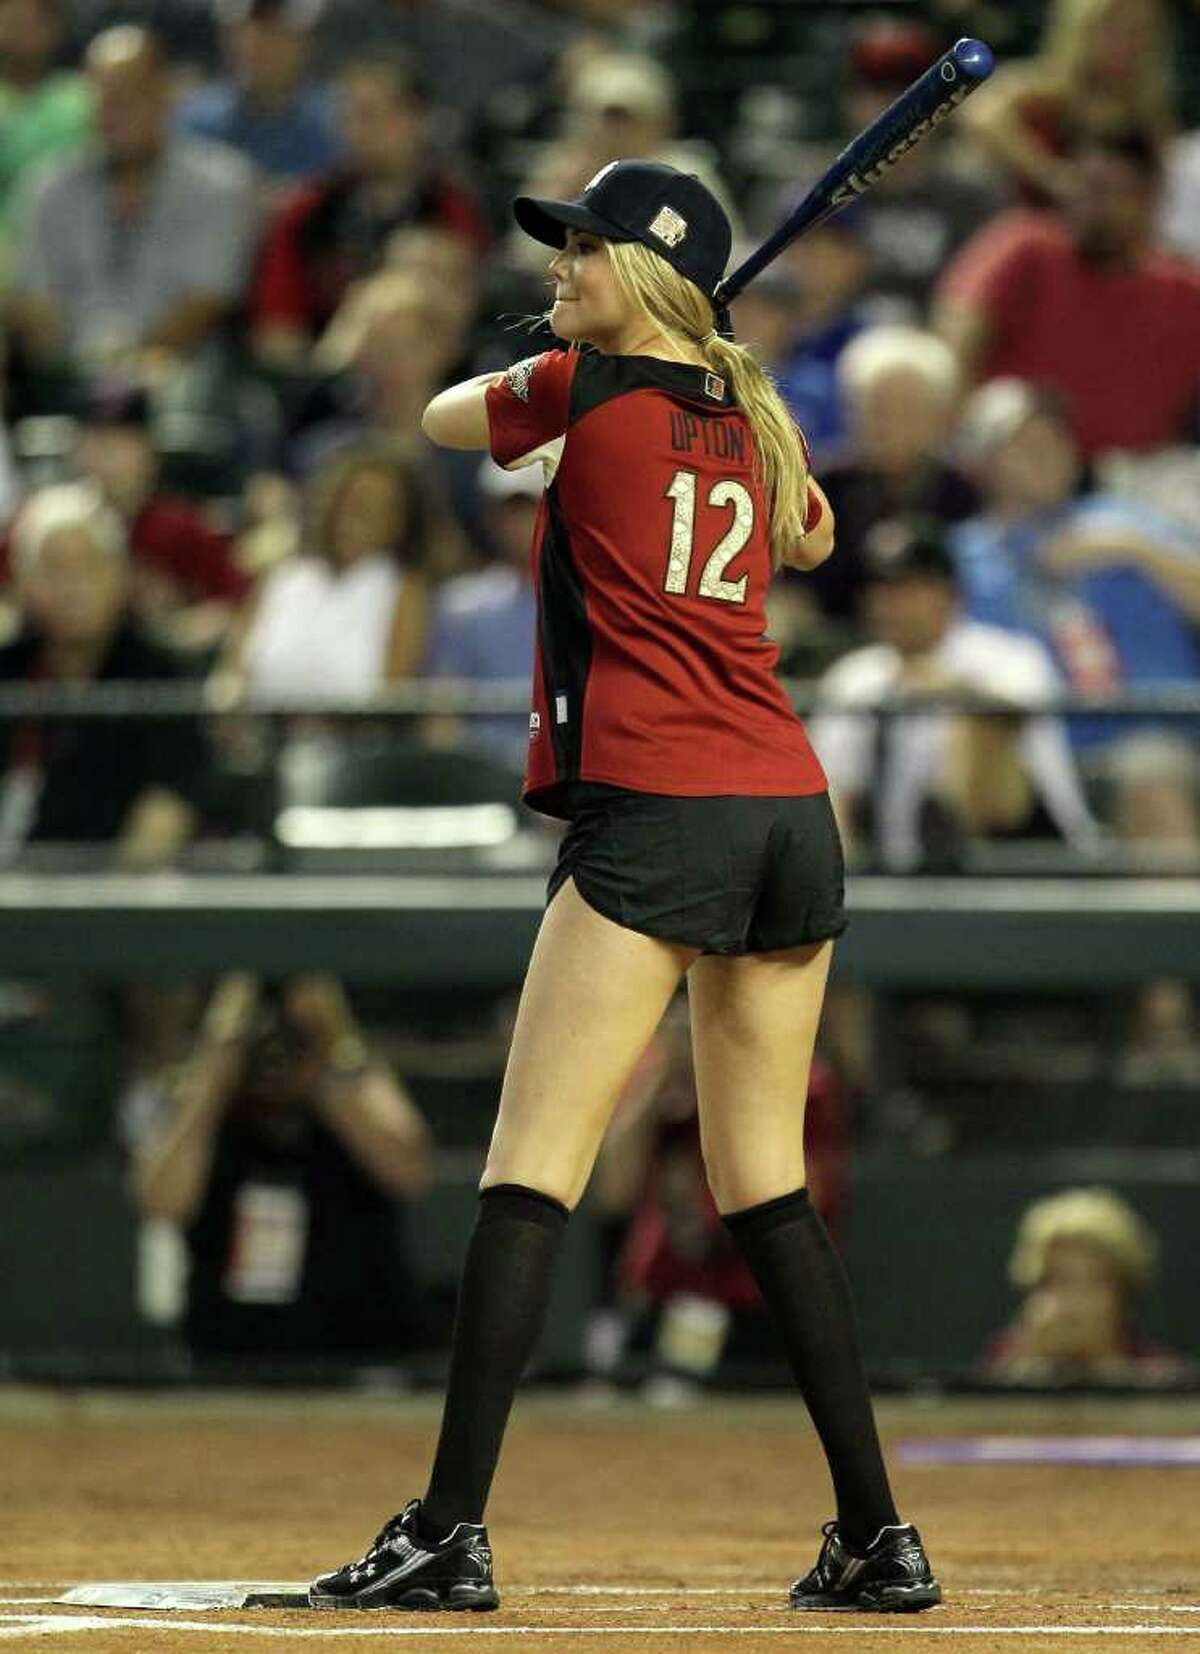 PHOENIX, AZ - JULY 10: Model Kate Upton takes an at bat during the 2011 Taco Bell All-Star Legends & Celebrity Softball Game at Chase Field on July 10, 2011 in Phoenix, Arizona. (Photo by Jeff Gross/Getty Images)